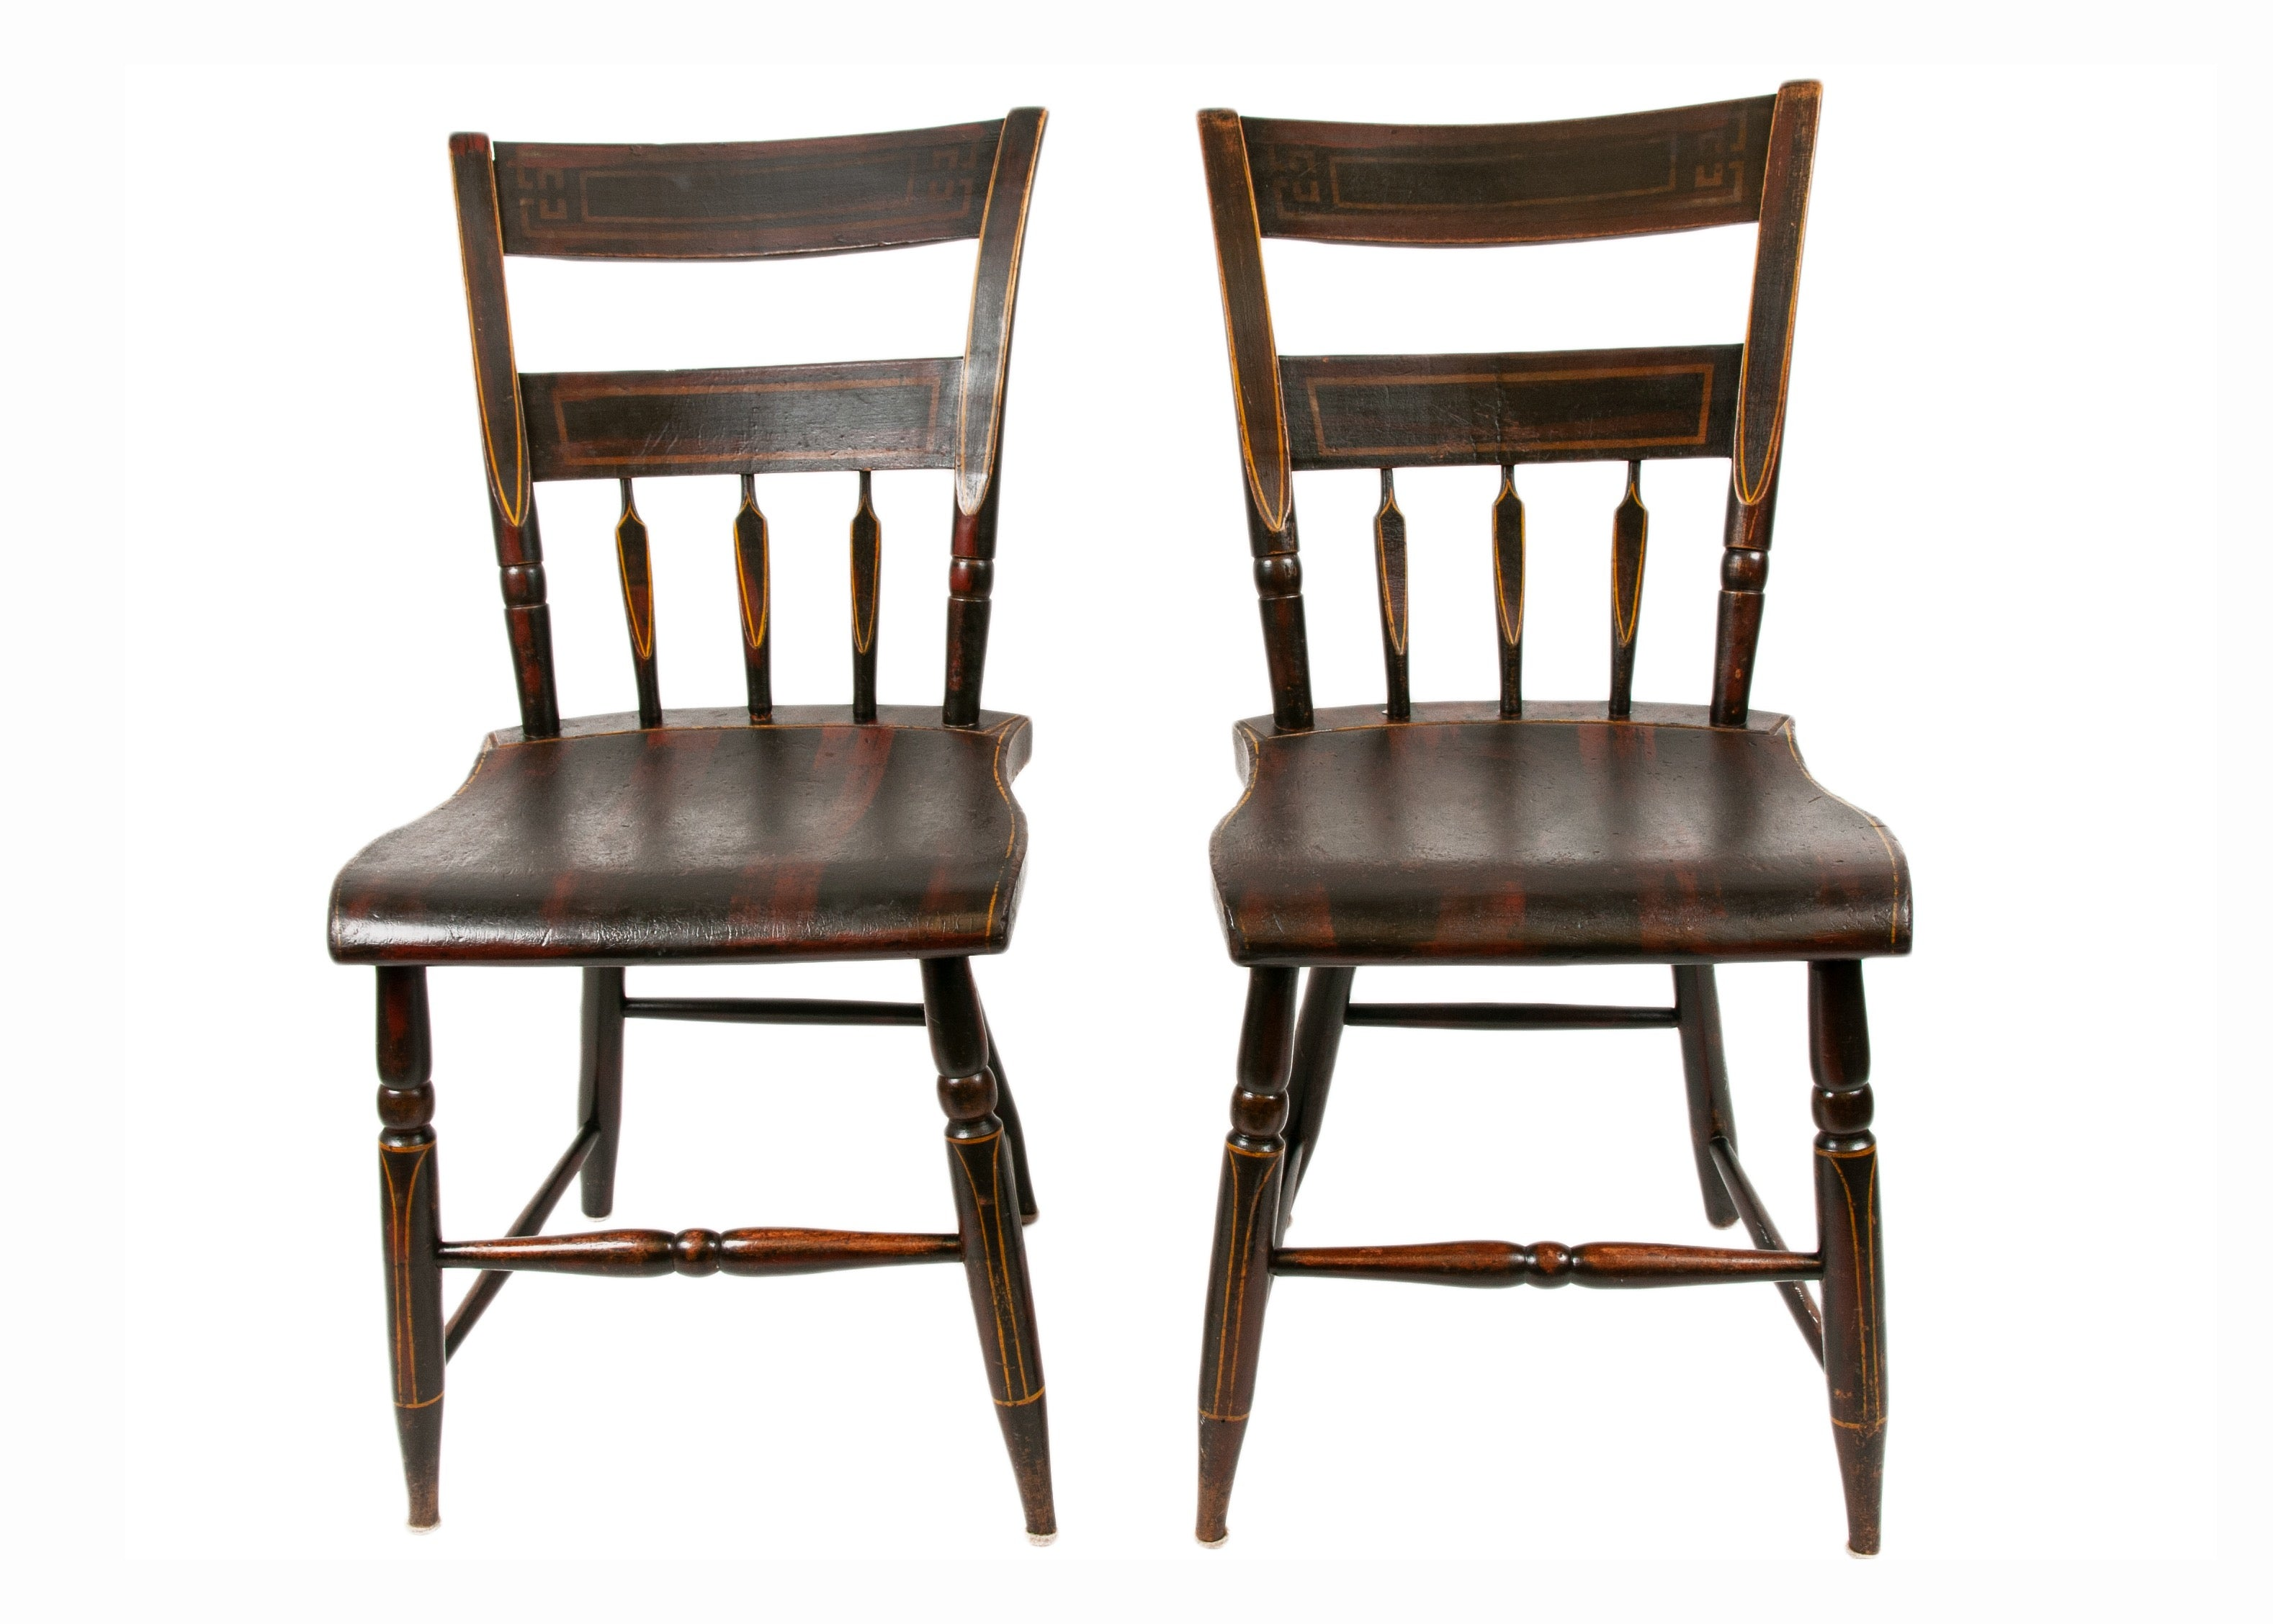 Antique Painted Hitchcock School Chairs With Plank Bottom And Ladder